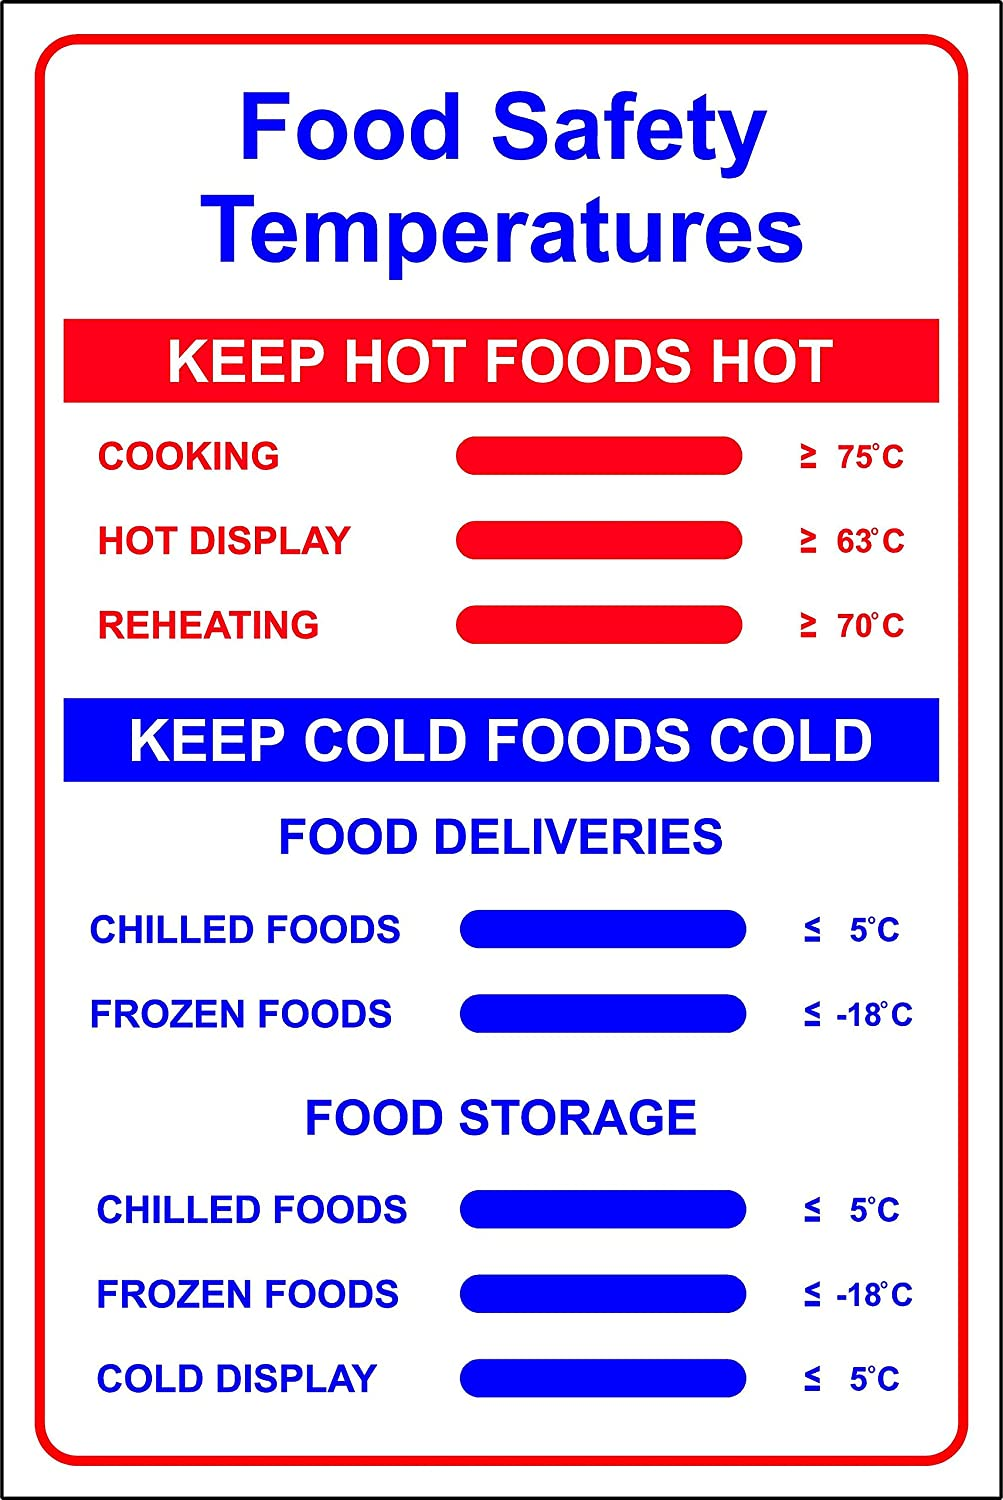 photograph about Free Printable Food Safety Signs identify Foods Security Temperatures Signal - Self adhesive vinyl 200mm x 300mm